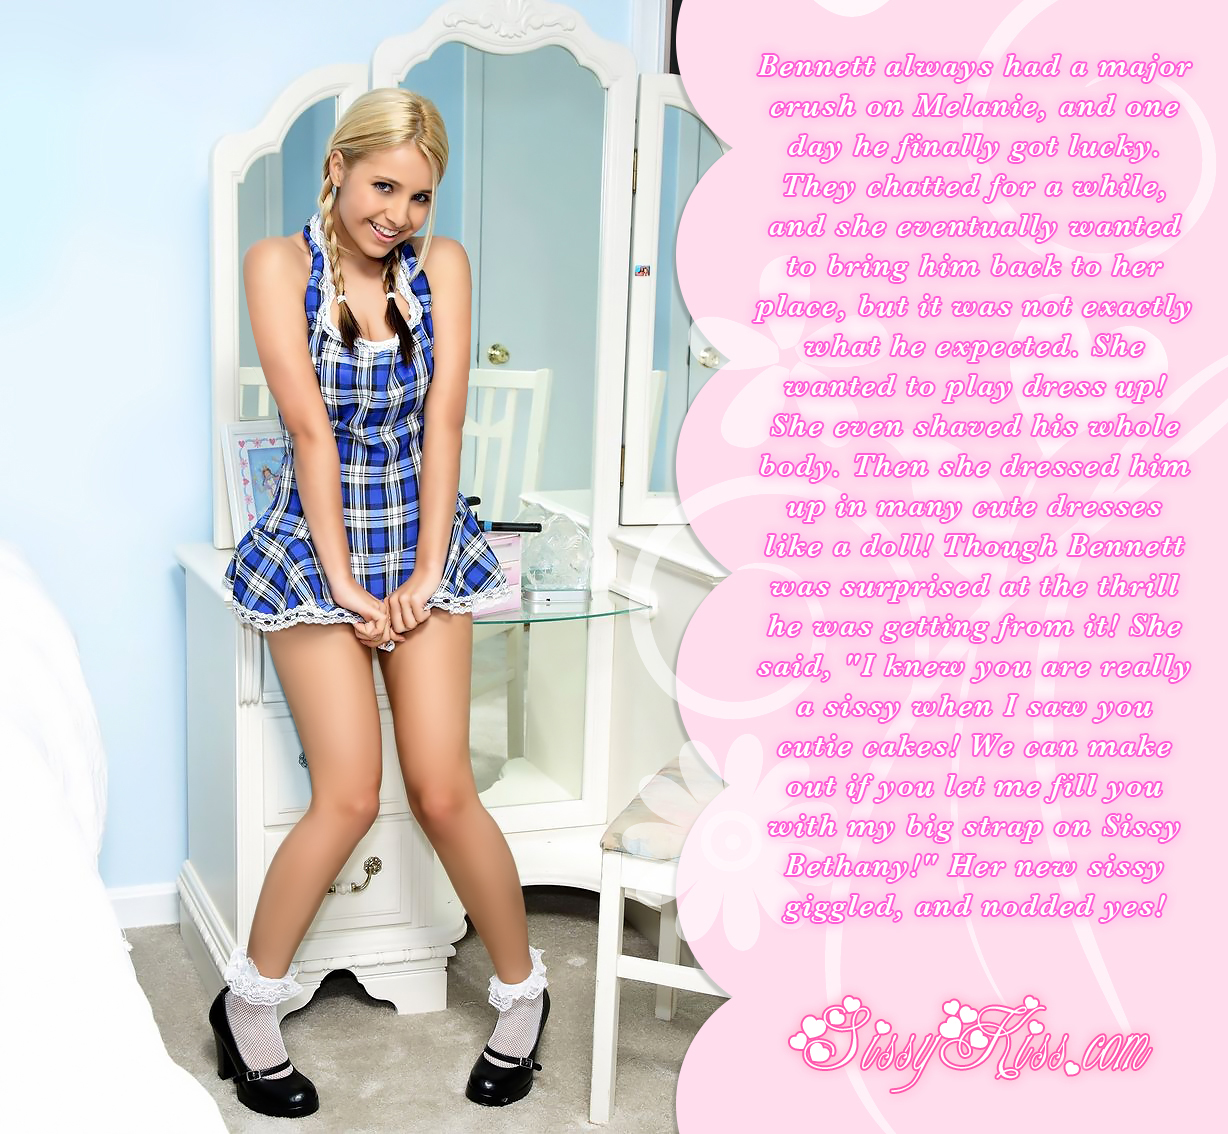 Awesome...!!! sissy anal gallery love